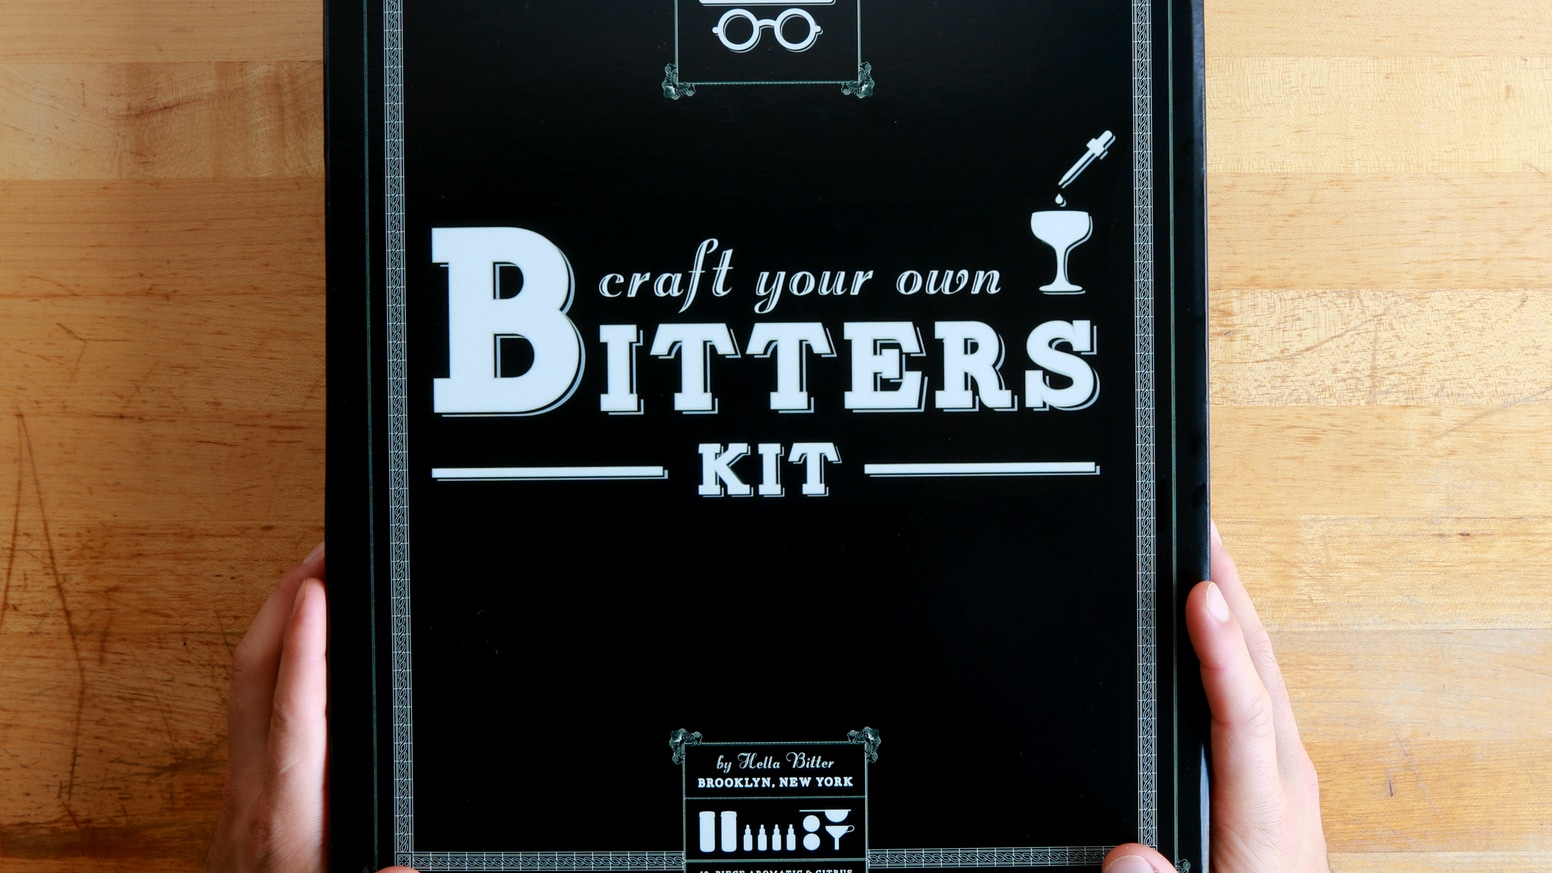 The Craft Your Own Bitters kit brings the satisfaction of making delicious bitters into the homes of cocktail lovers everywhere.